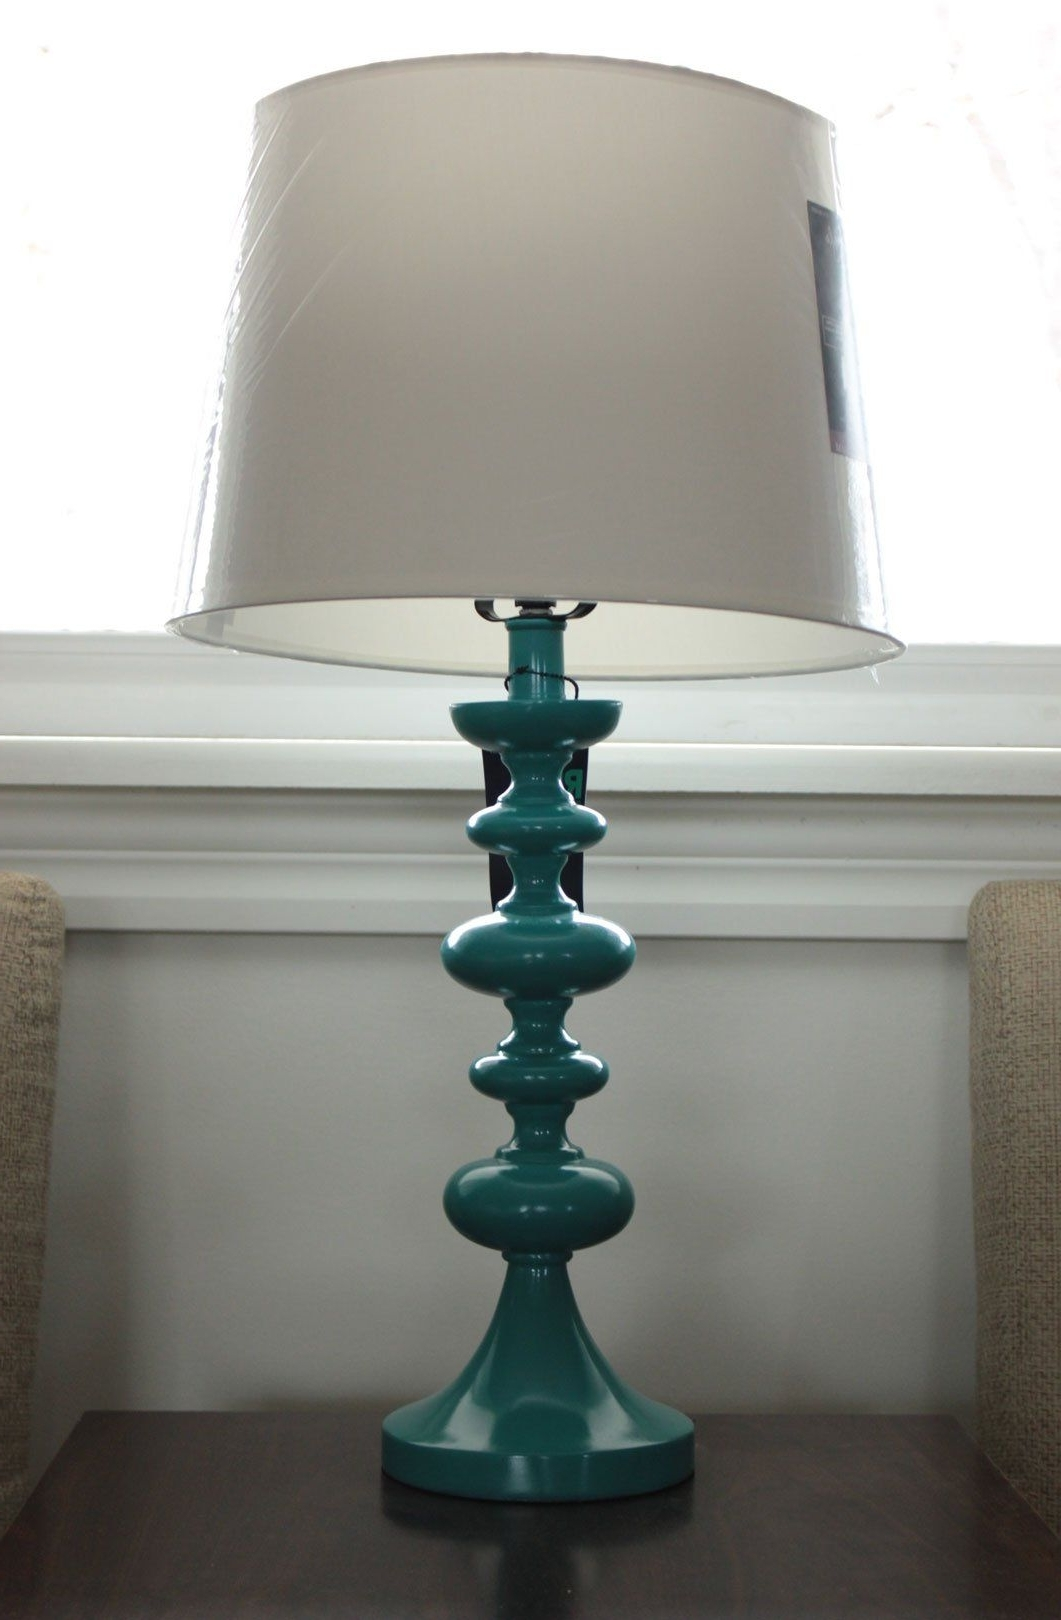 Target Table Lamps For Teal Living Room Table Lamps (View 9 of 15)